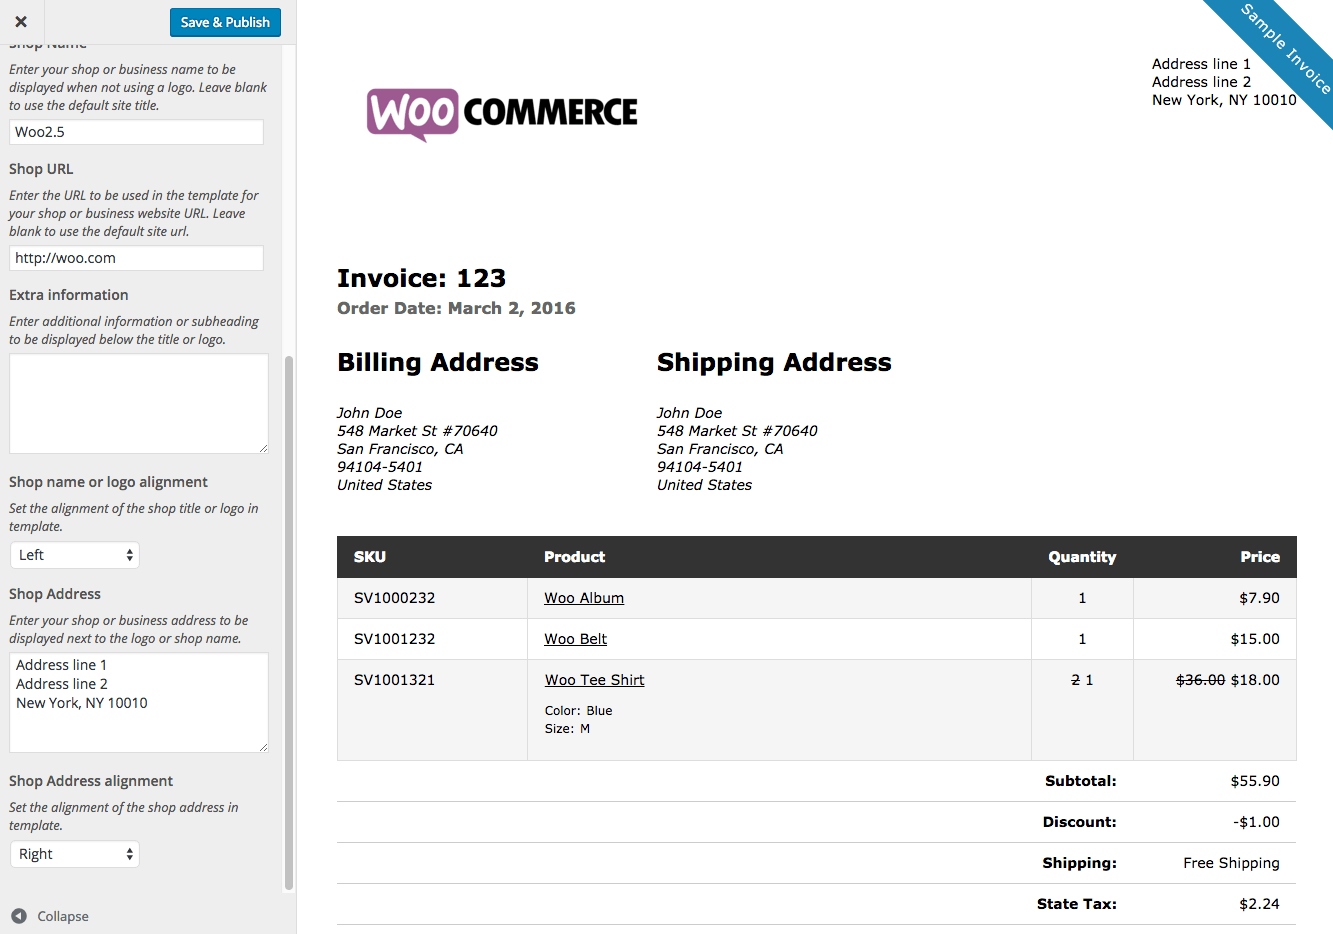 Centralasianshepherdus  Prepossessing Print Invoices Amp Packing Lists  Woocommerce With Excellent Woocommerce Print Invoices  Packing Lists Customizer With Divine Rental Receipts Pdf Also Payment Receipt Sample Format In Addition Form Receipt Of Payment And Payment And Receipt As Well As Capital Receipt Definition Additionally Sales Receipt For Car From Woocommercecom With Centralasianshepherdus  Excellent Print Invoices Amp Packing Lists  Woocommerce With Divine Woocommerce Print Invoices  Packing Lists Customizer And Prepossessing Rental Receipts Pdf Also Payment Receipt Sample Format In Addition Form Receipt Of Payment From Woocommercecom